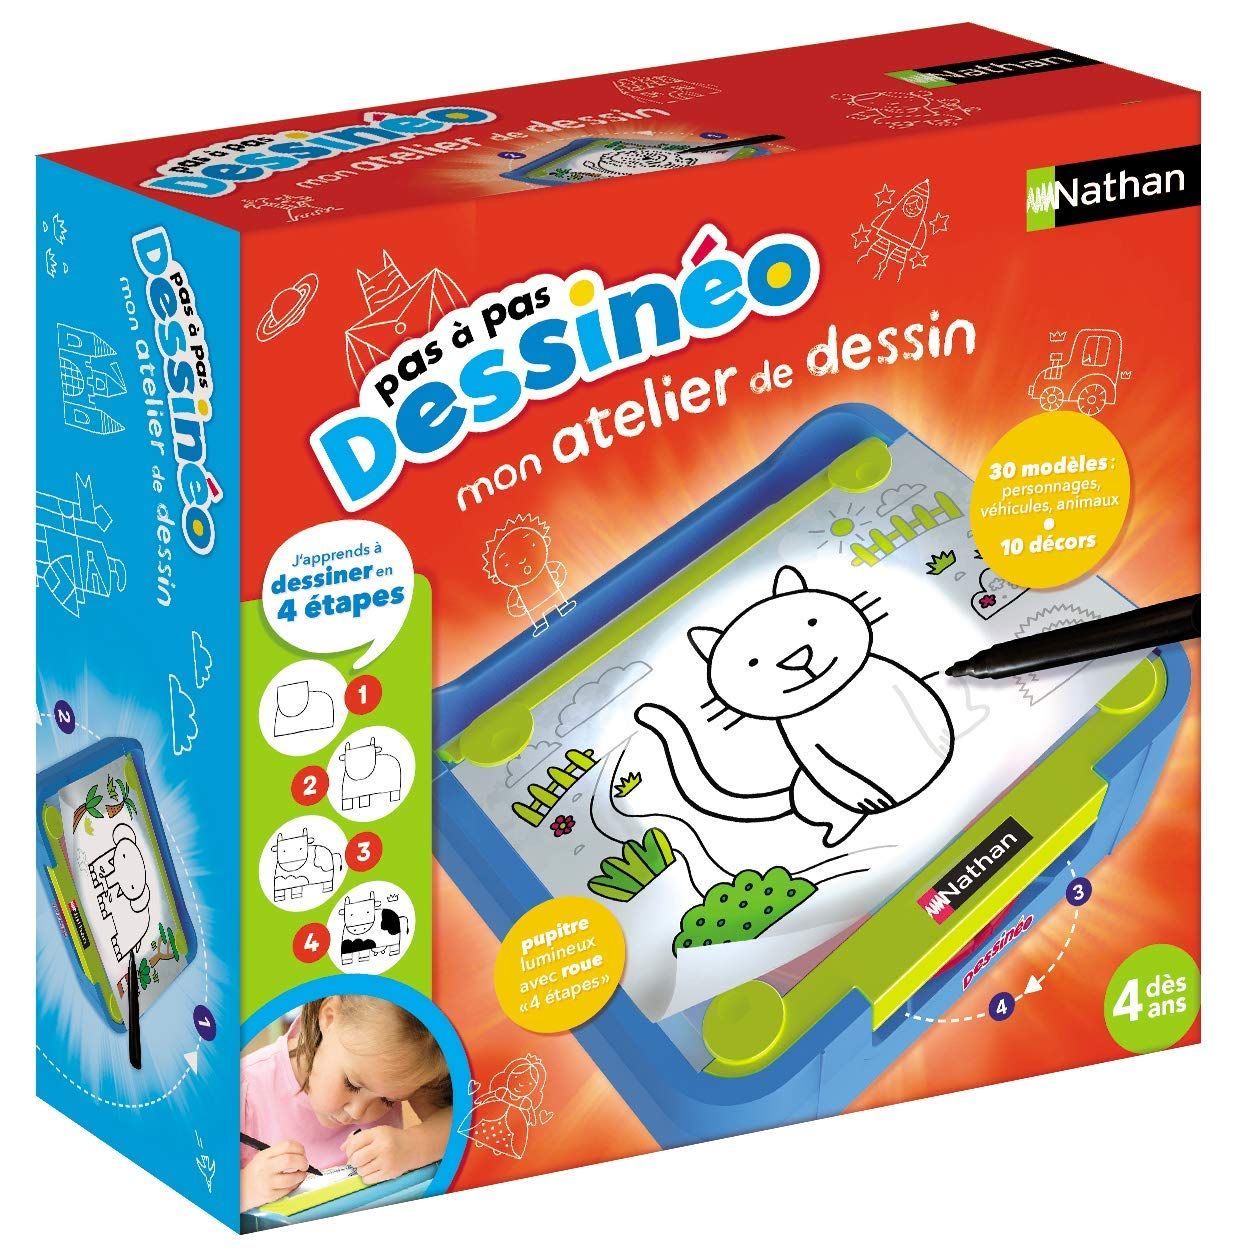 Nathan 31141 Dessineo Step By Step Amazon Co Uk Toys Games